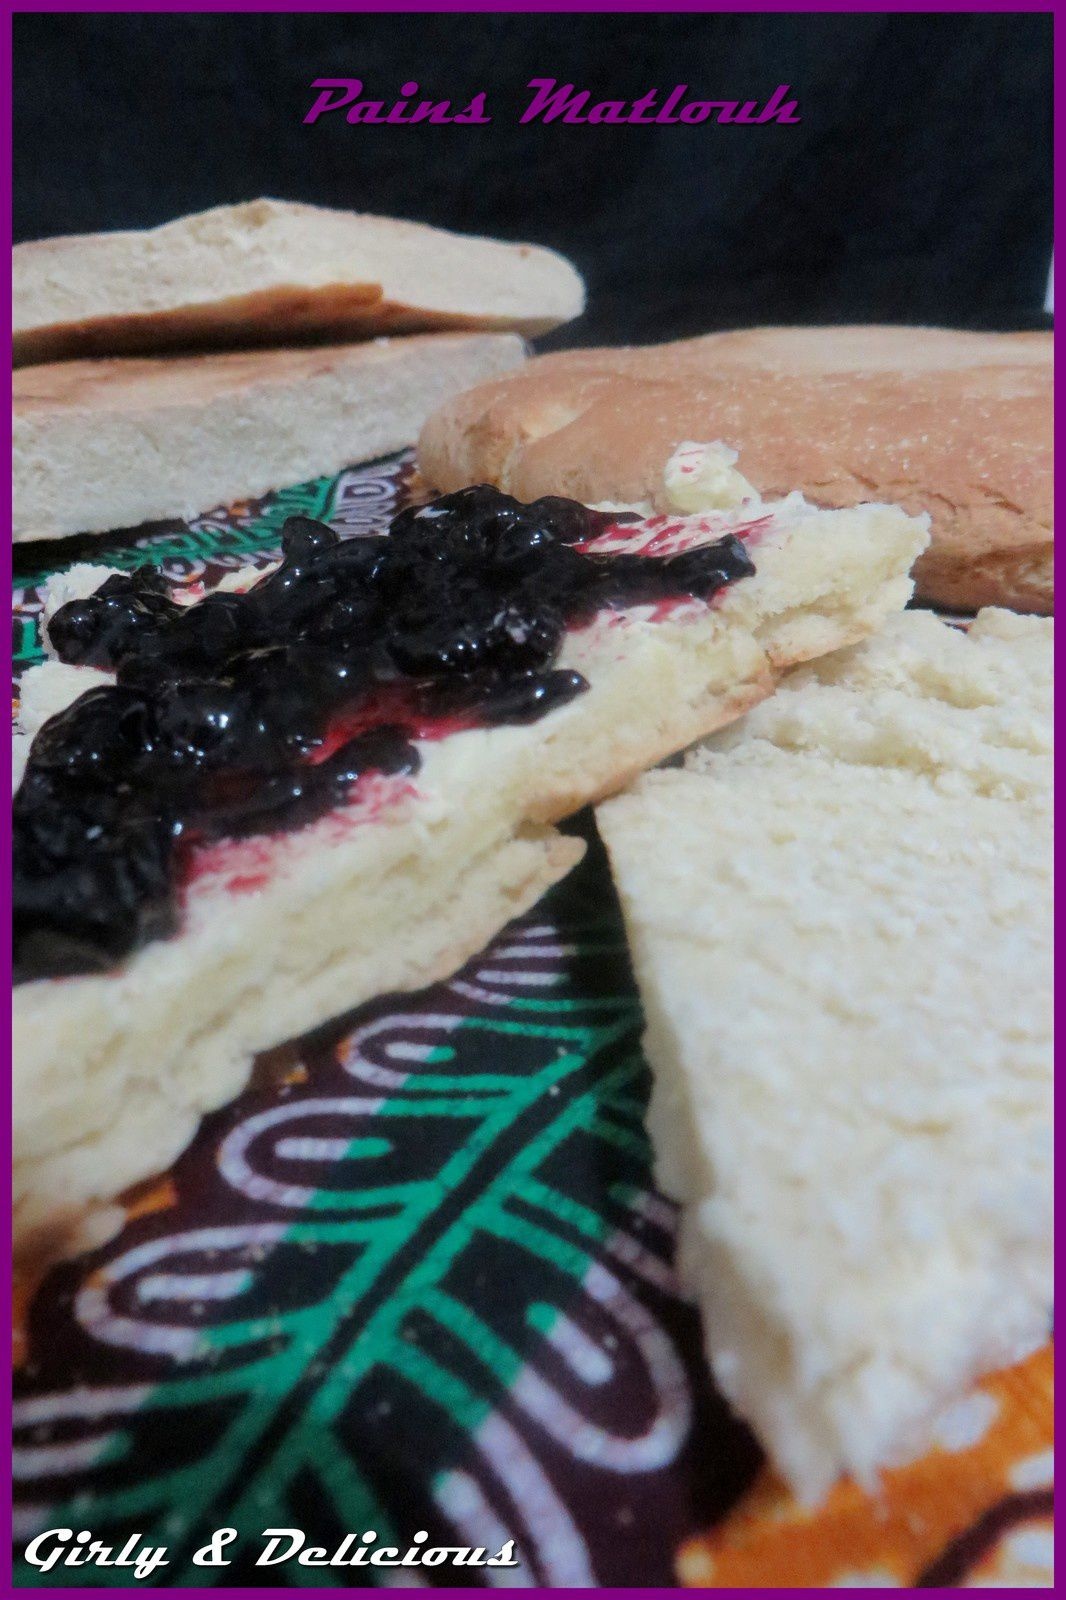 Pains Matlouh by Cookies